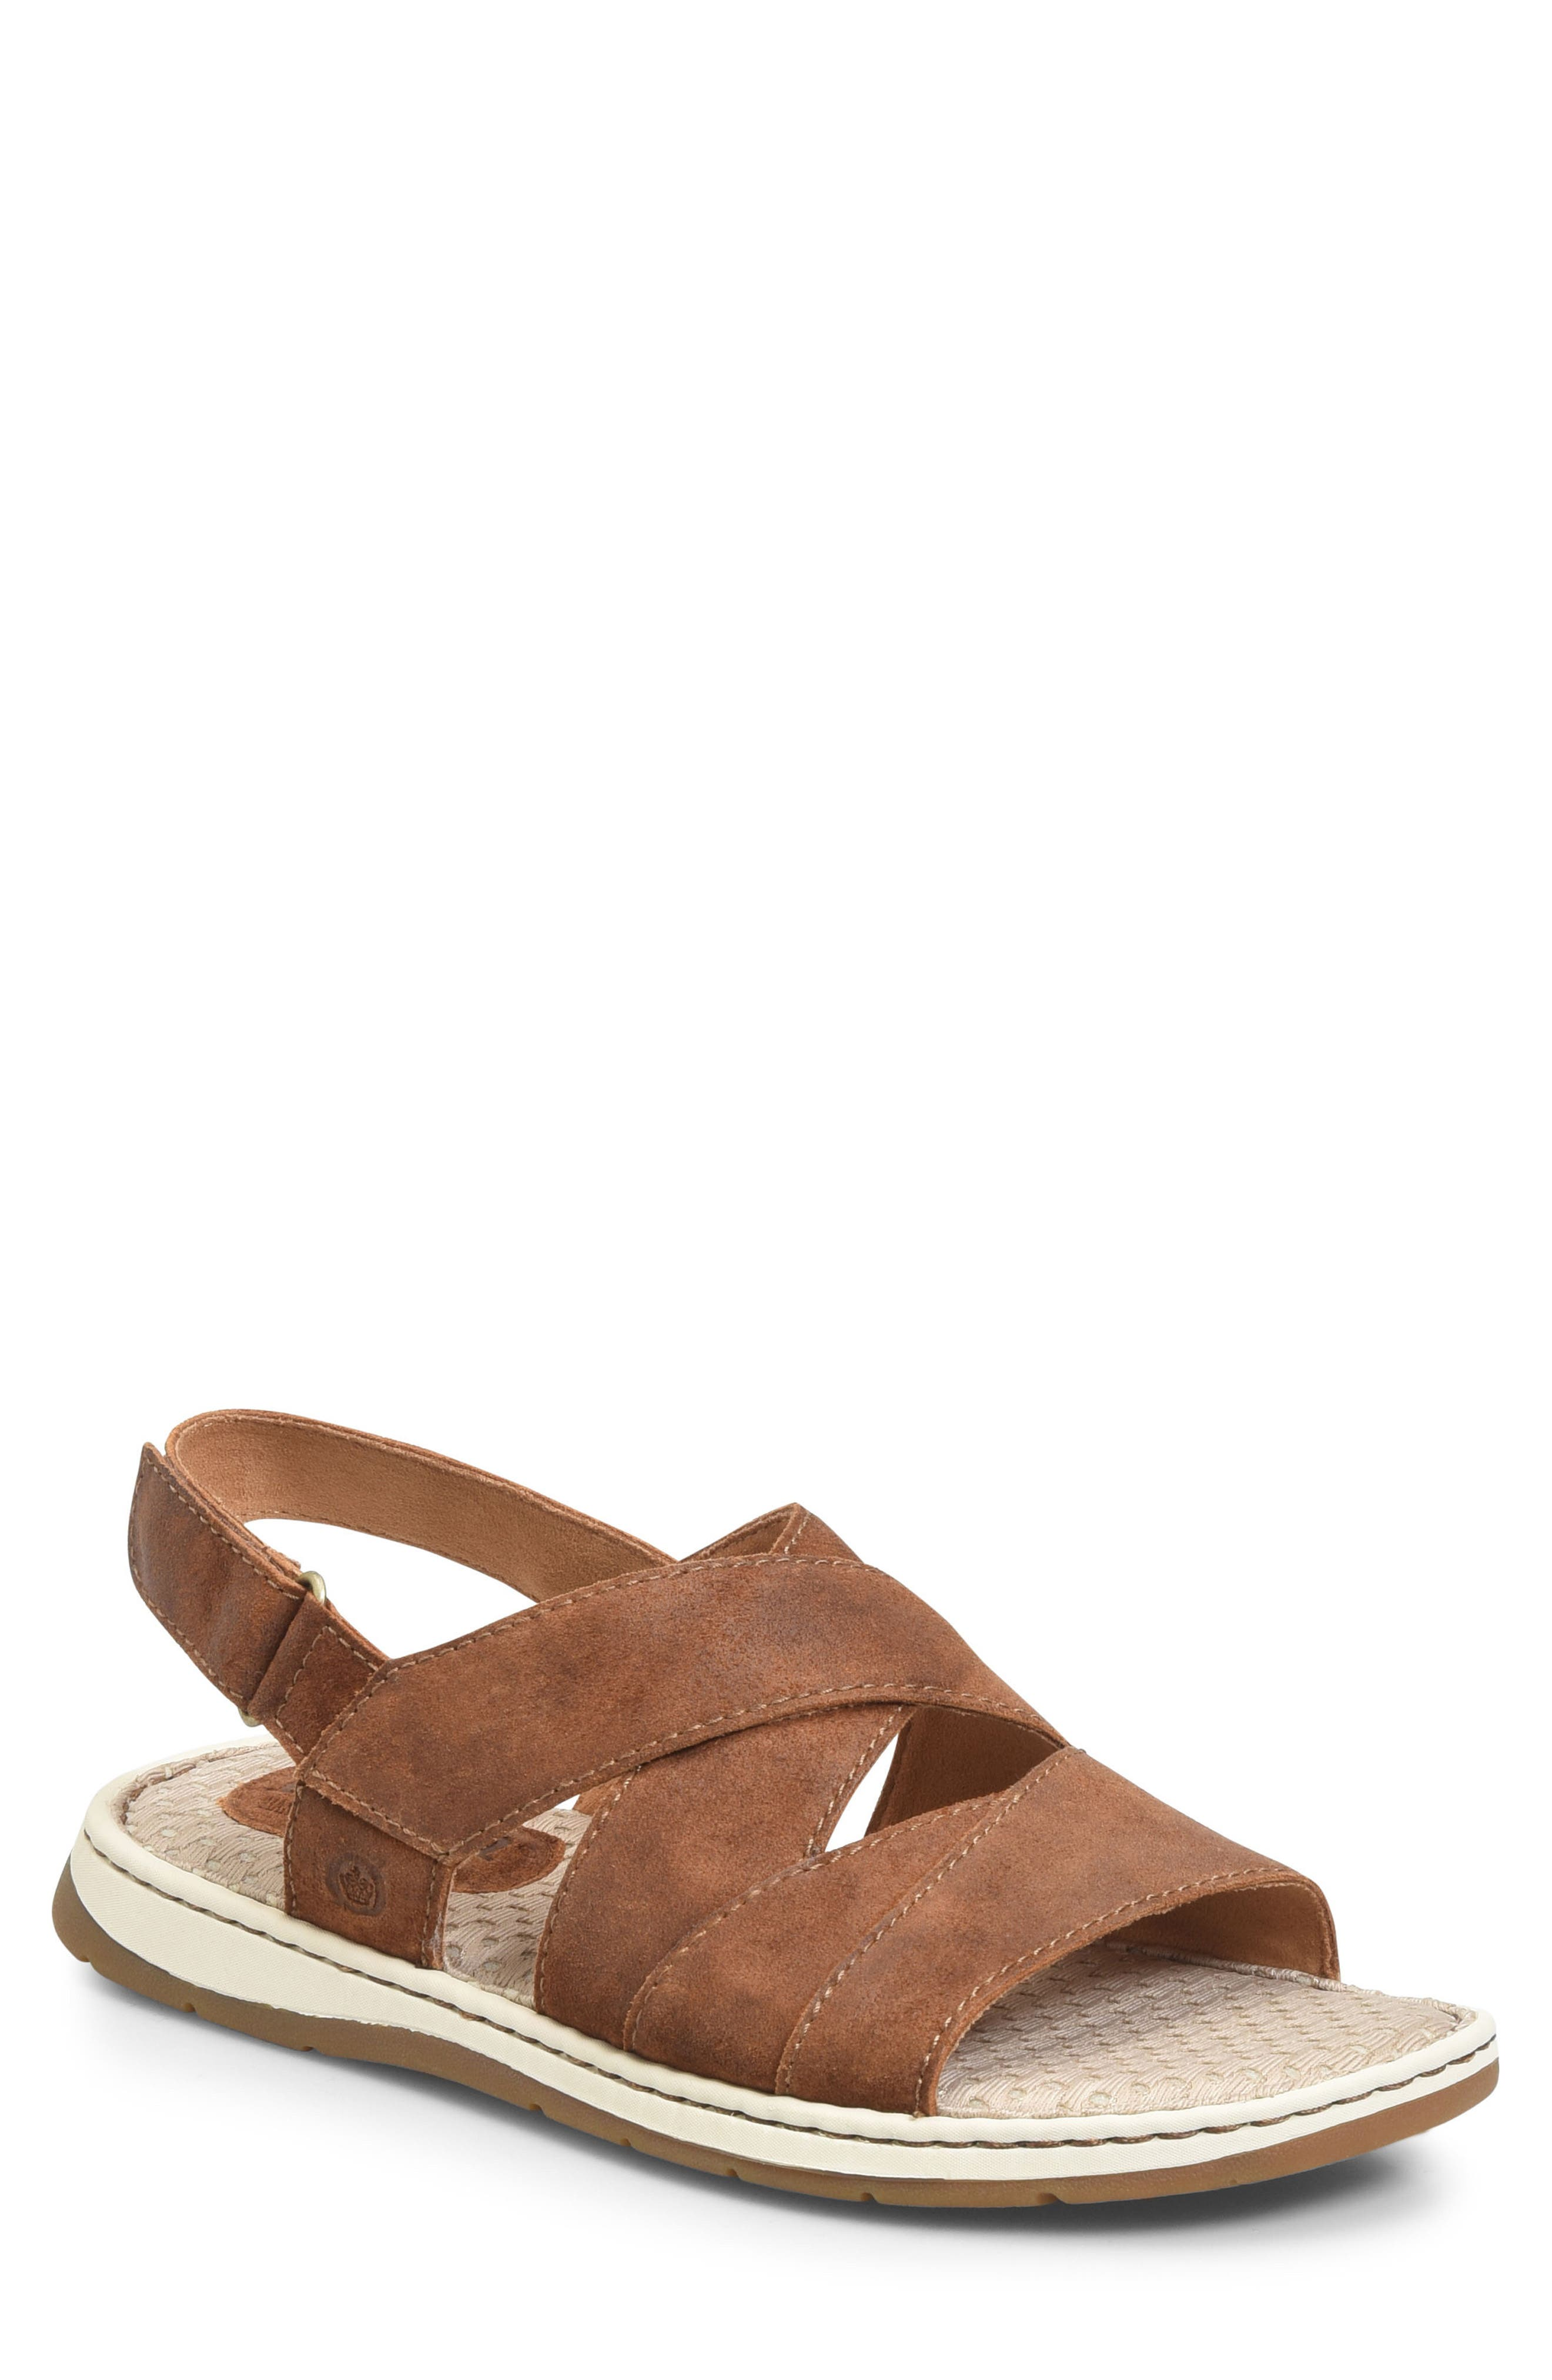 Shell Cross Strap Sandal,                             Main thumbnail 1, color,                             Rust Leather